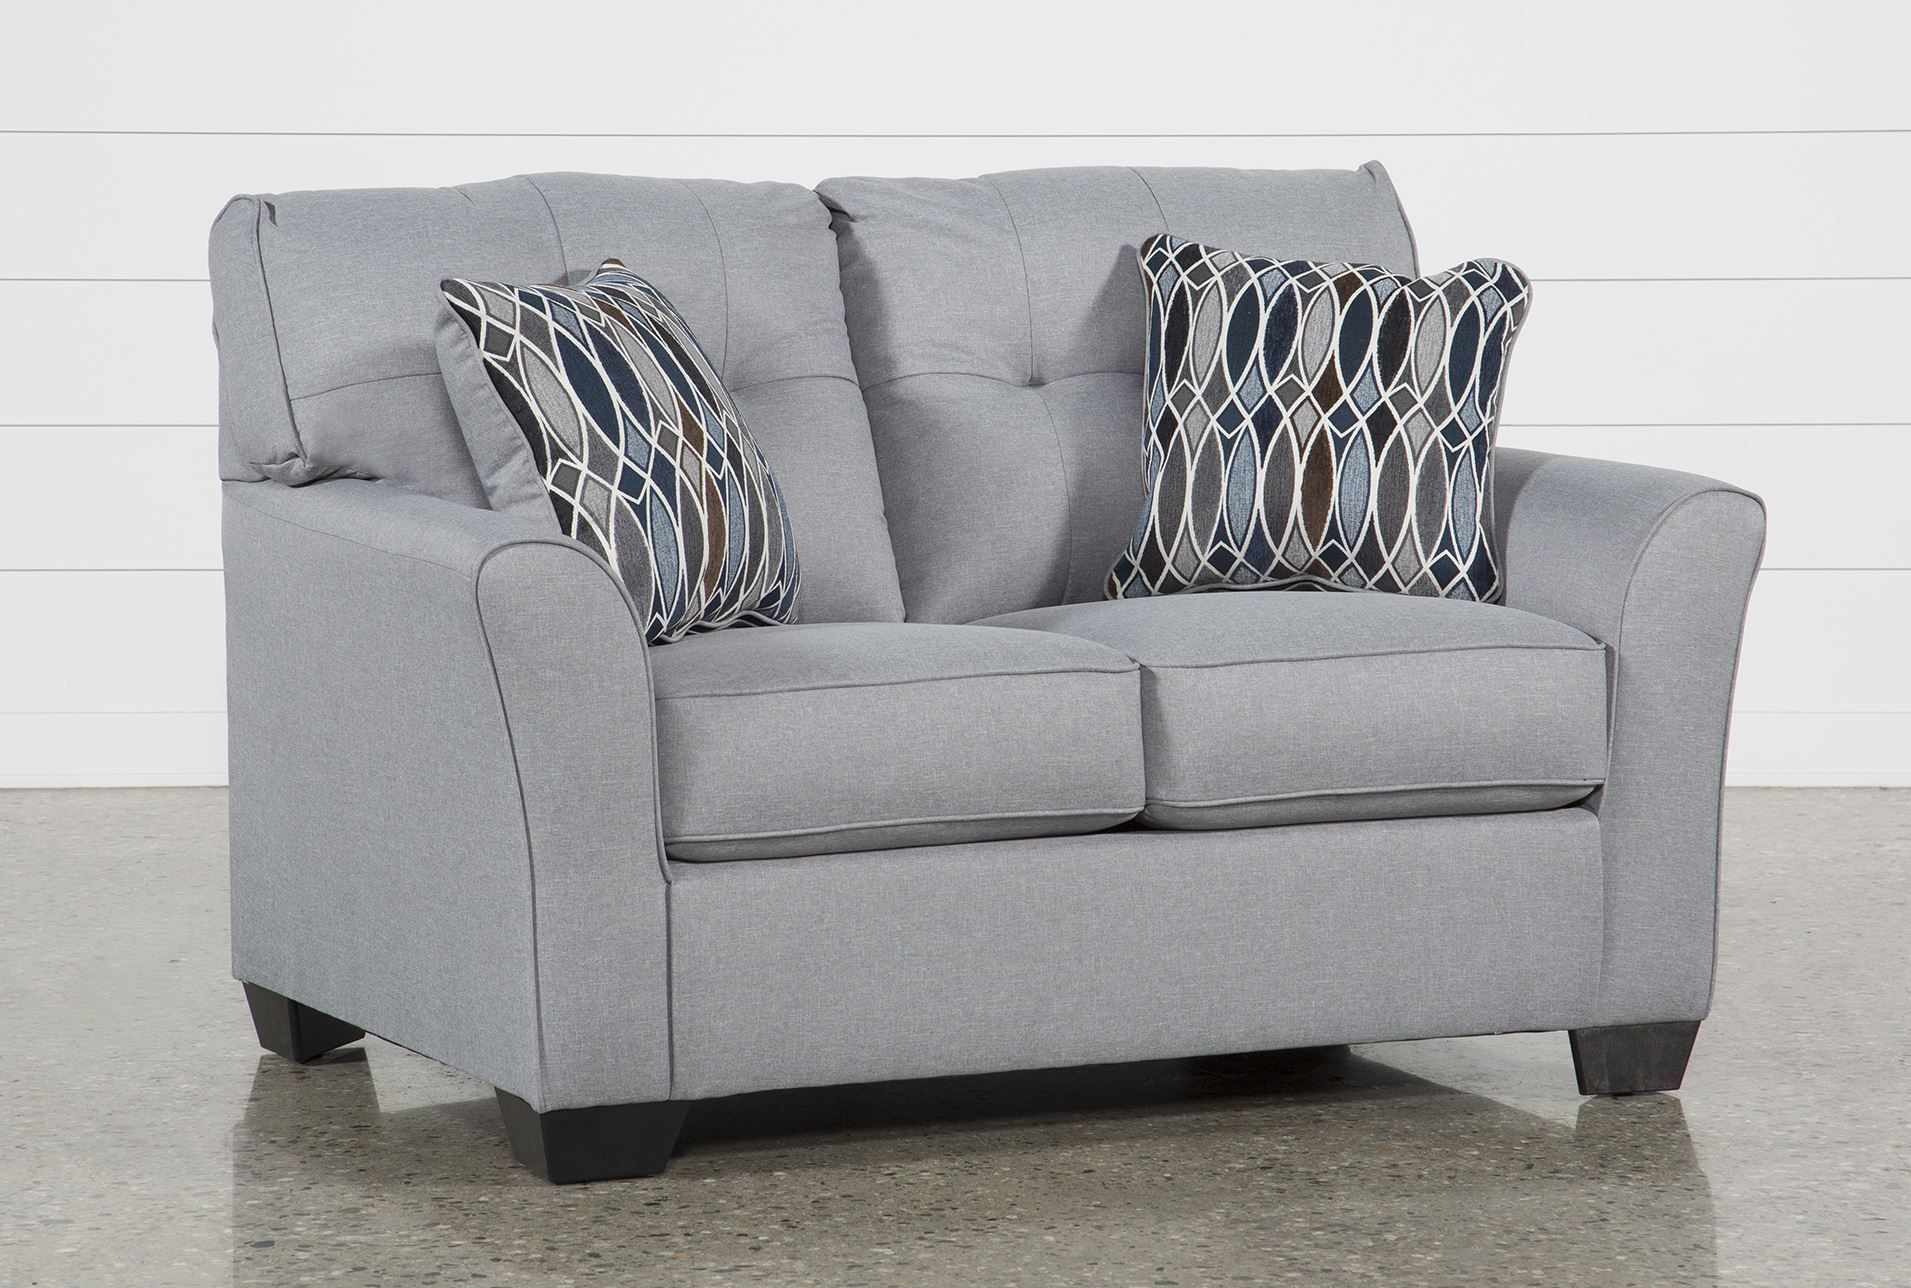 Ashley Chilkoot Smoke Loveseat, Grey, Sofas   Pinterest   Products For Mcdade Ash Sofa Chairs (Image 7 of 20)